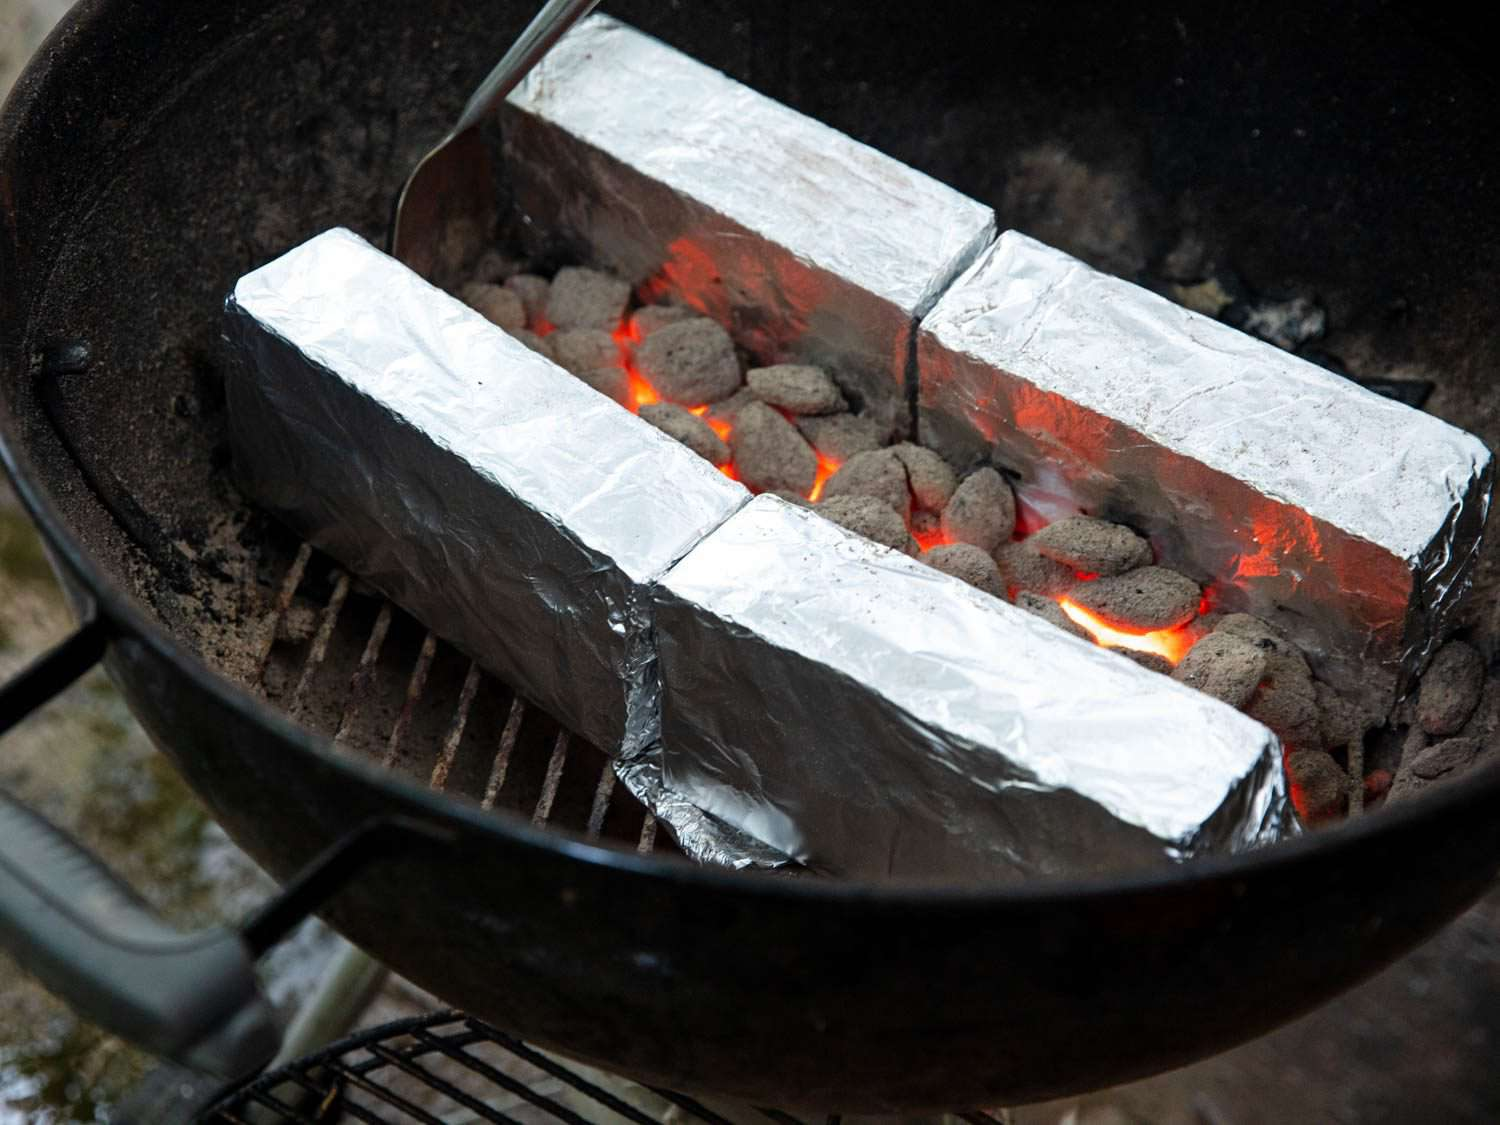 Arranging glowing coals between two parallel walls of foil-wrapped bricks for cooking skewers in a kettle grill.